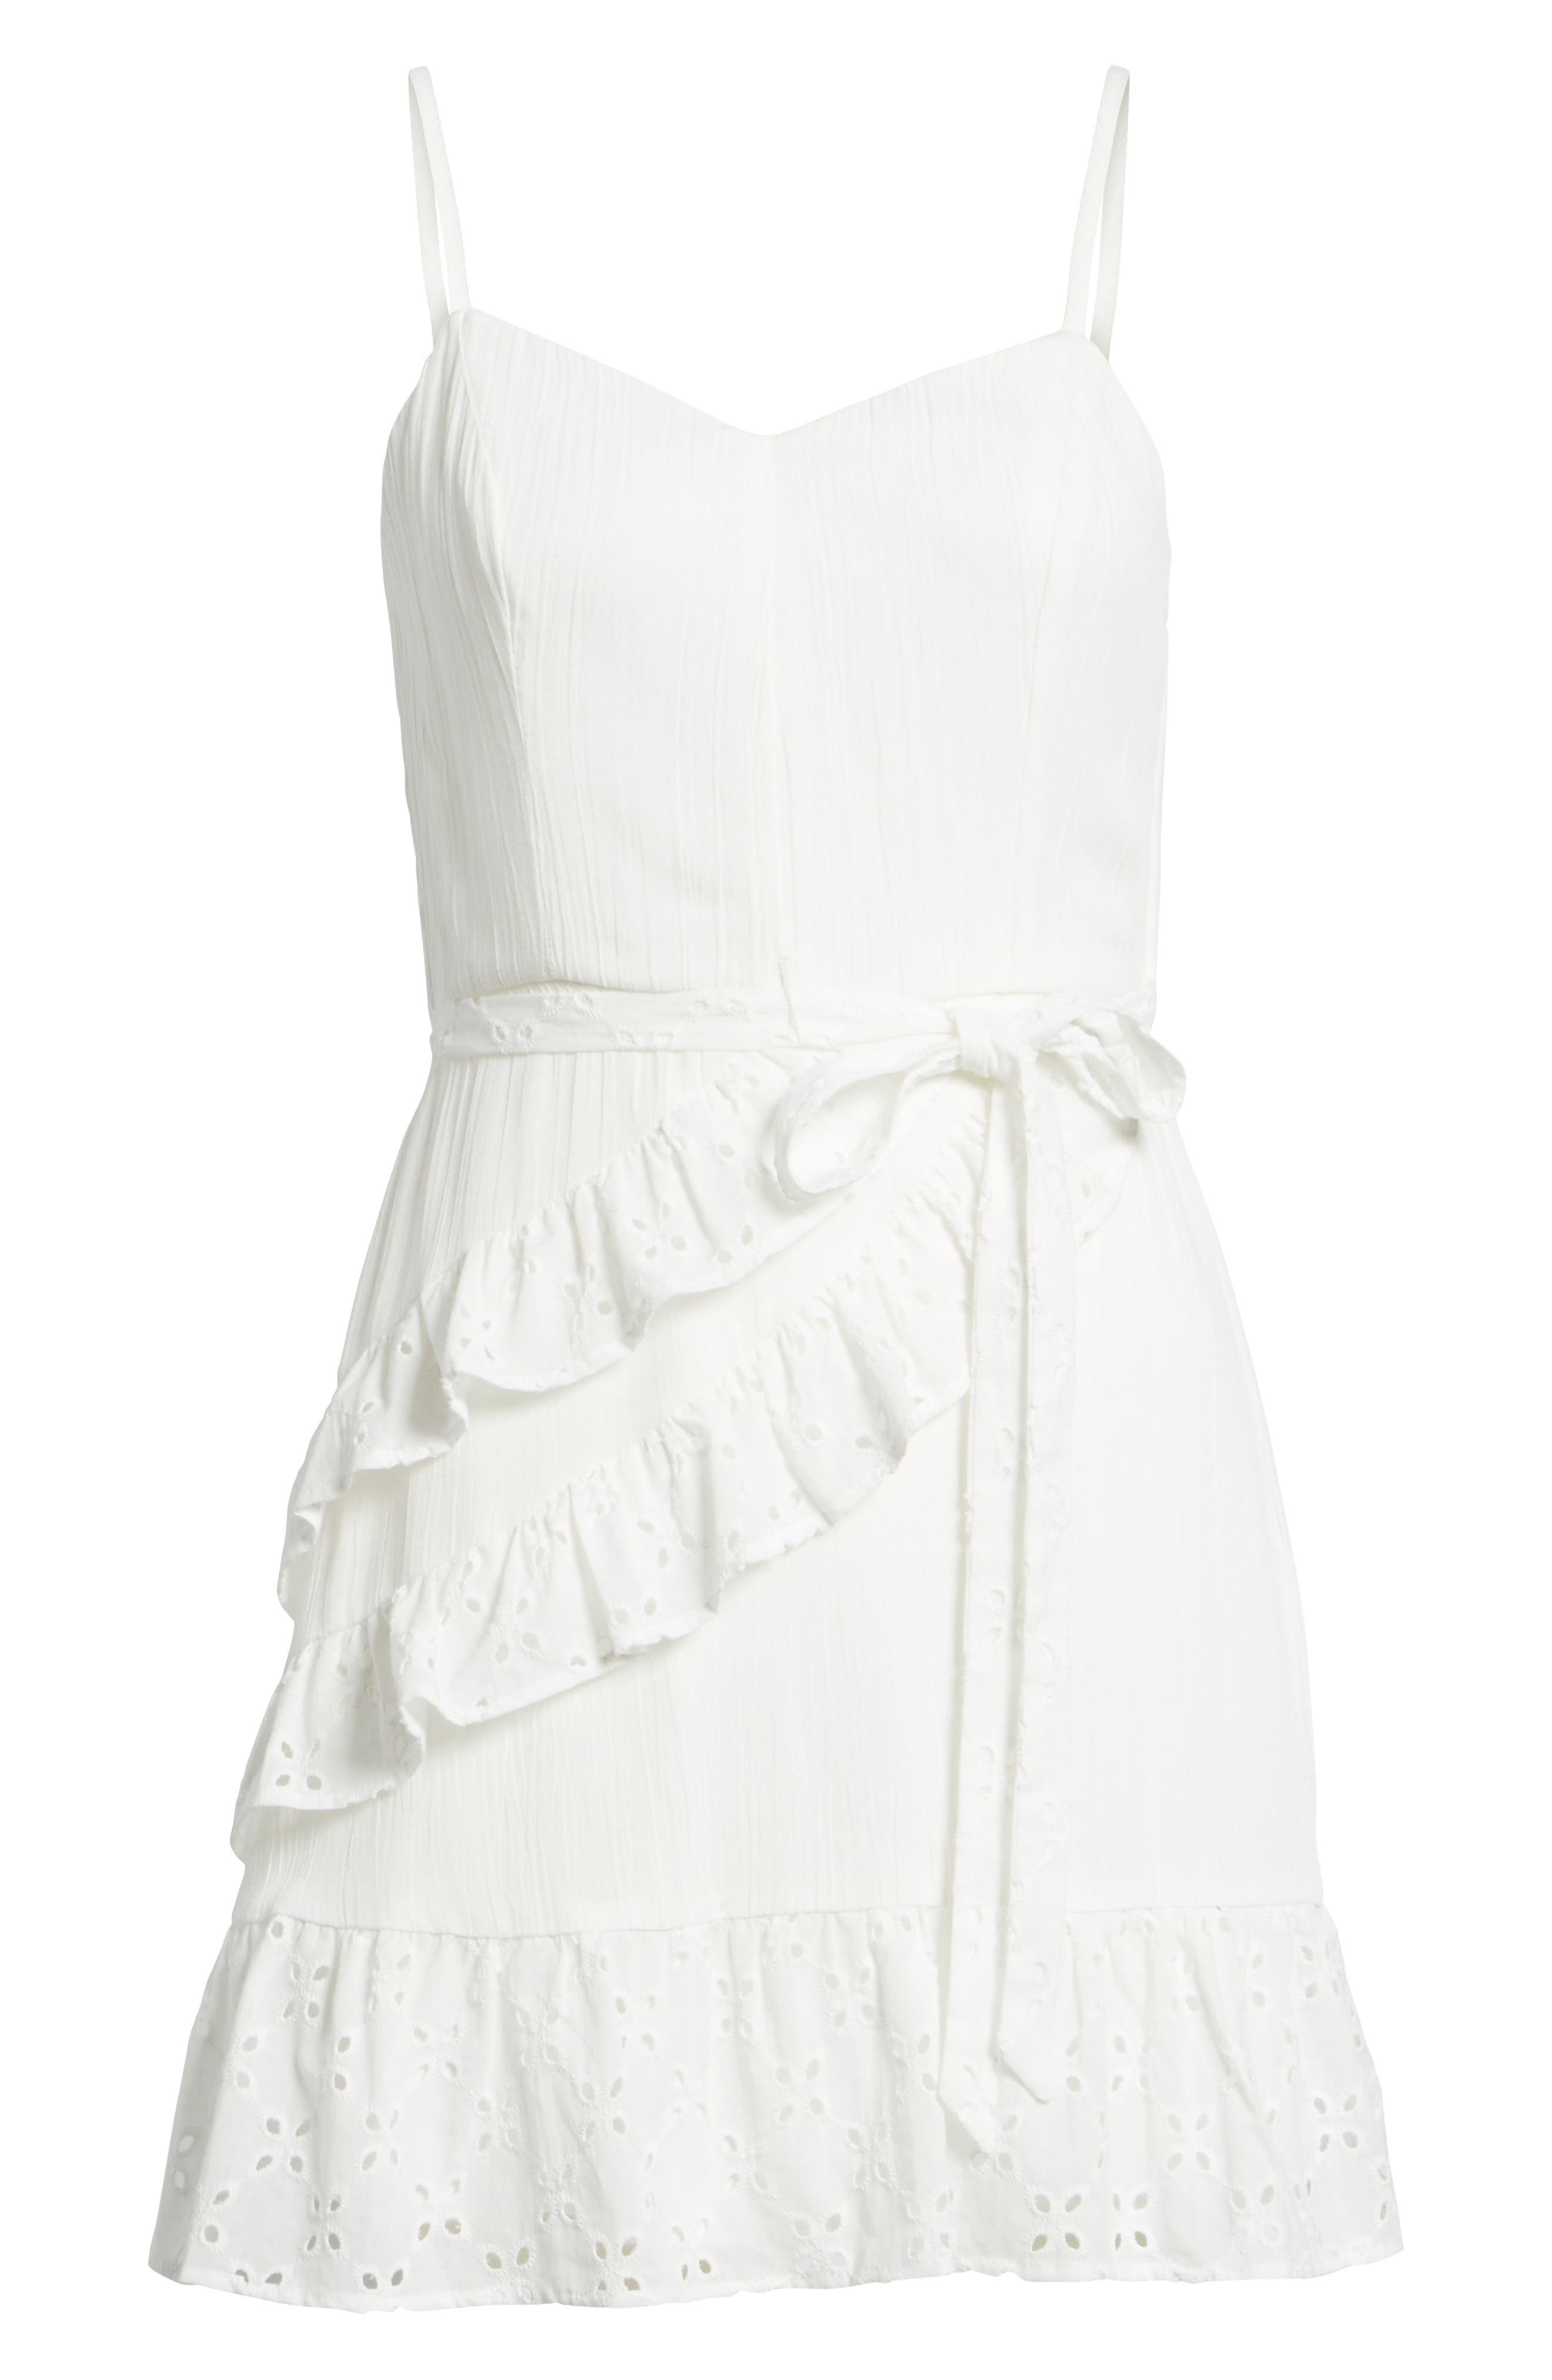 Ruffle Eyelet Minidress,                             Alternate thumbnail 6, color,                             Milky White